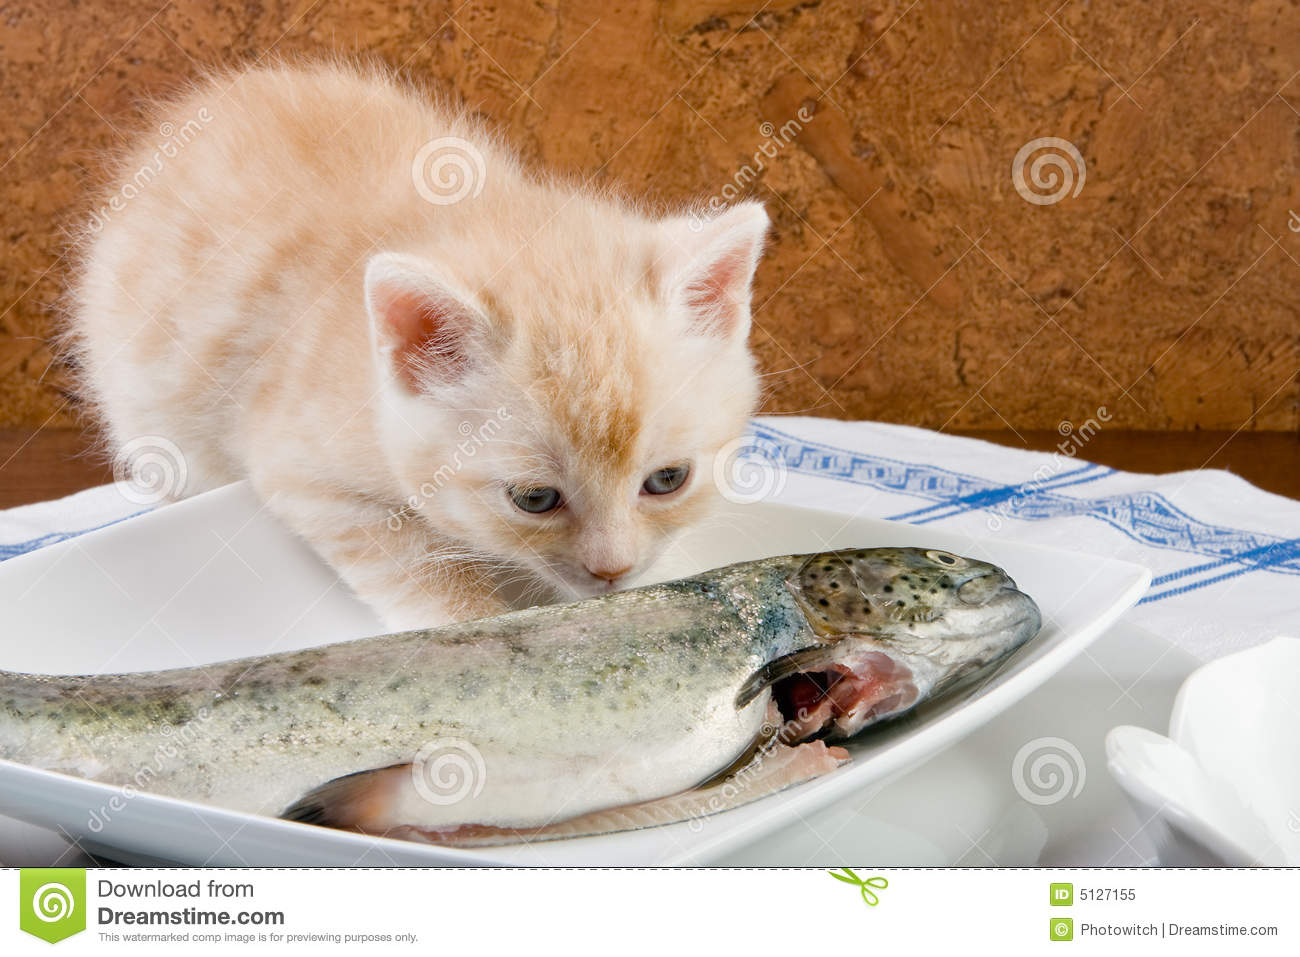 fishy smell royalty free stock photo image 5127155